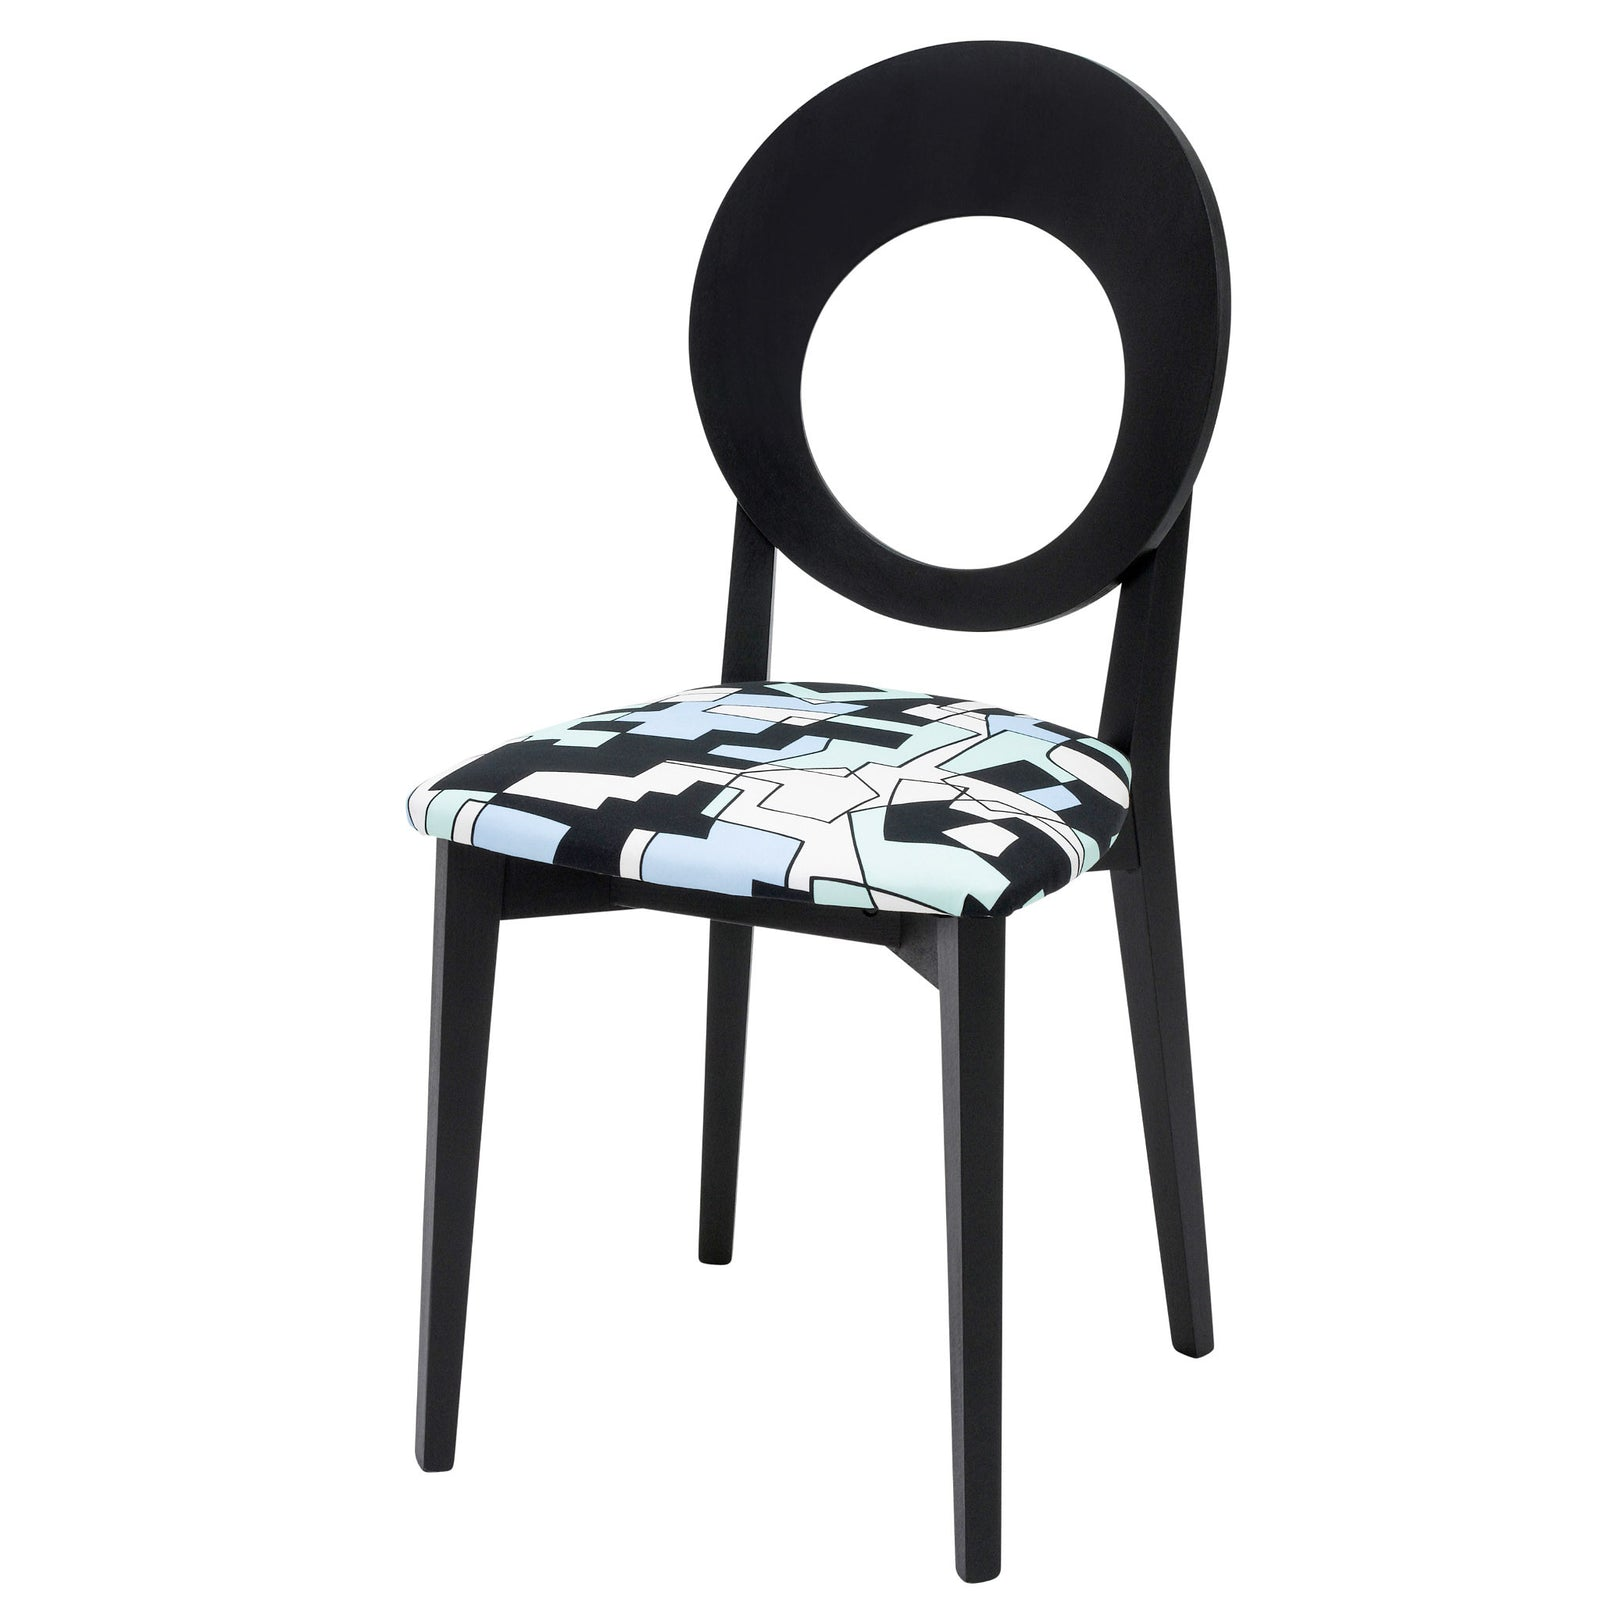 The Chloe designer dining chair is upholstered with the distinctive doodle design by Jon Burgerman and finished in Jack Black eggshell.